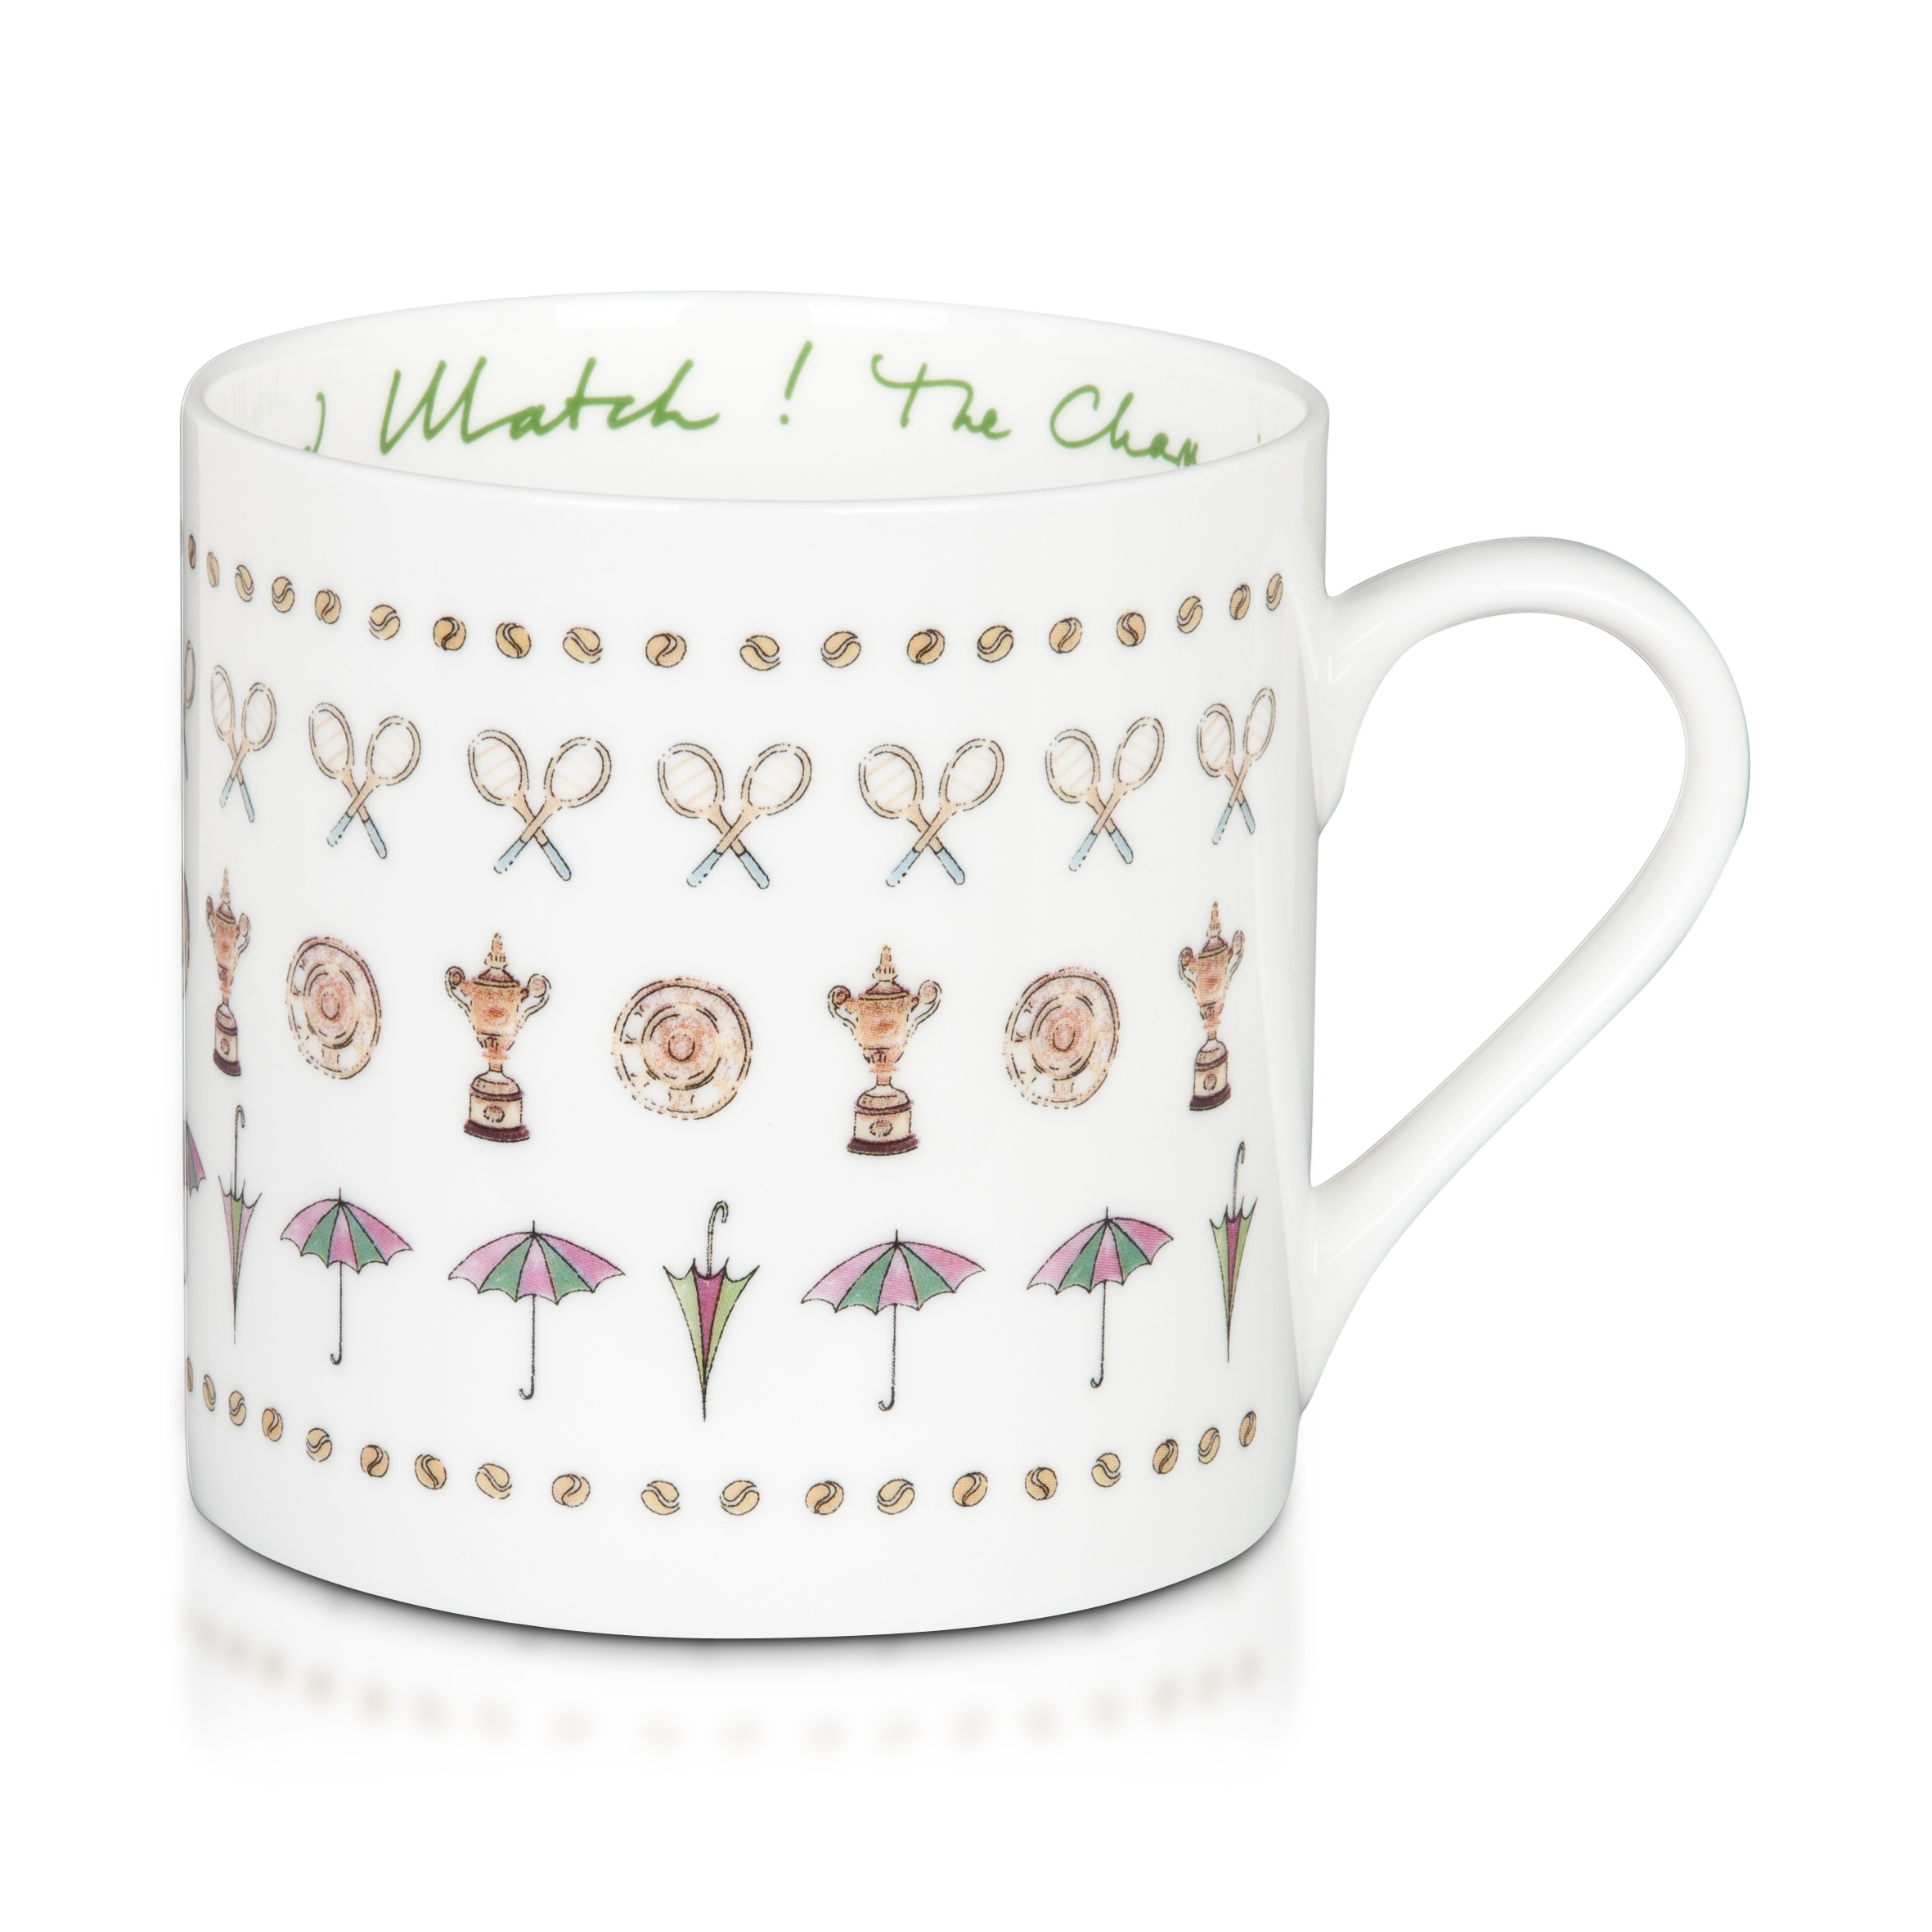 Wimbledon Racket and Umbrella Mug